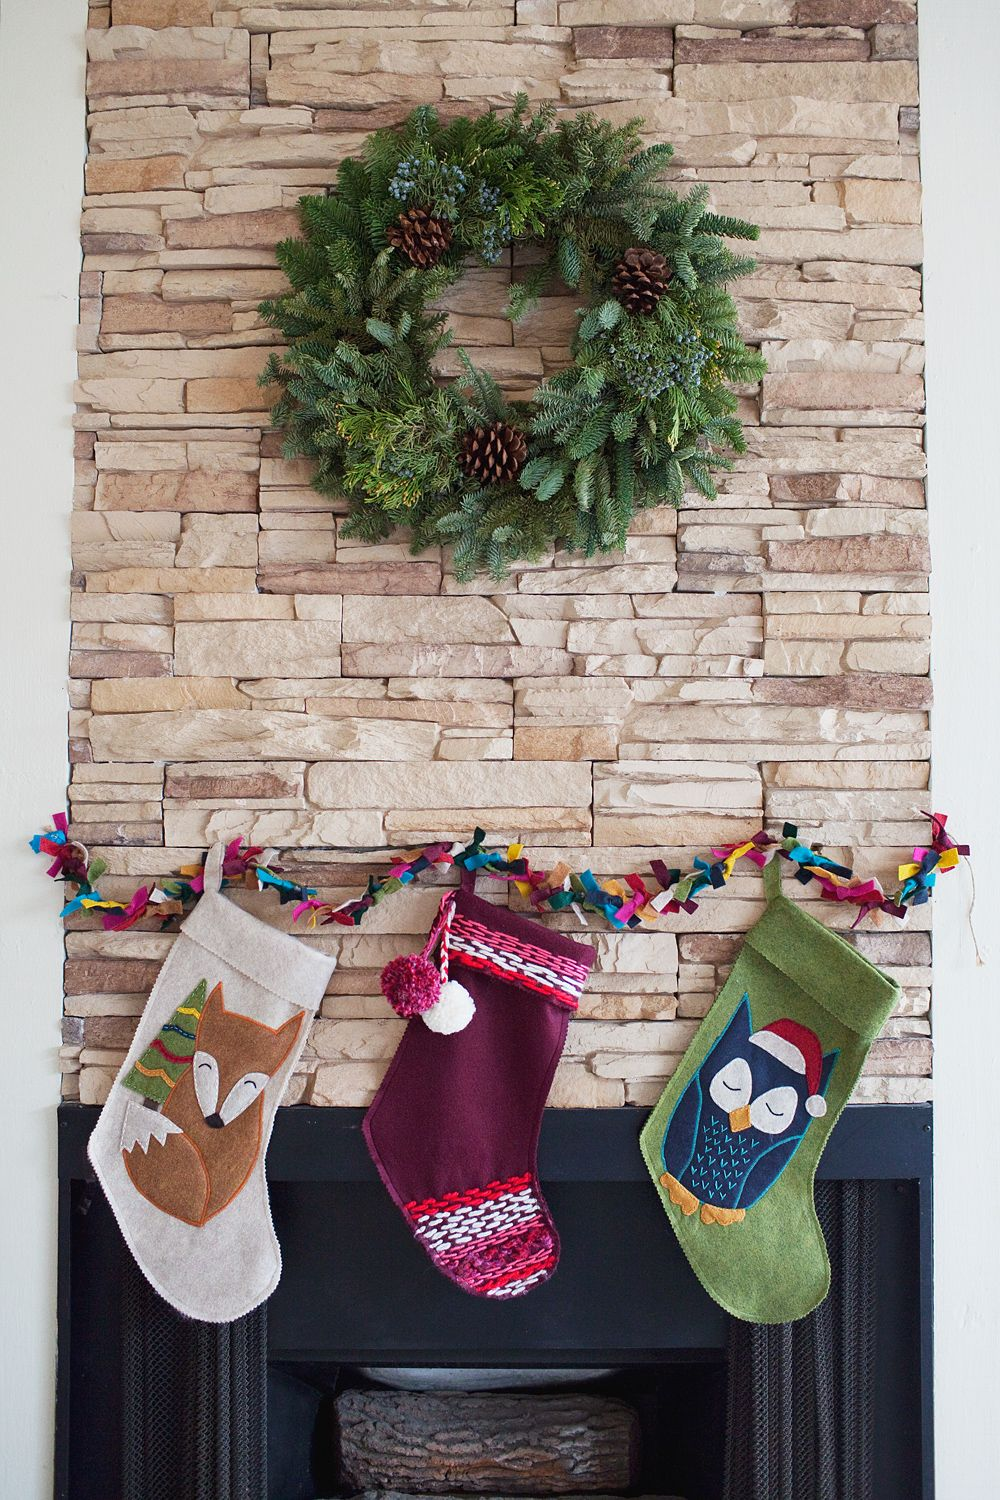 18 Unique Christmas Stockings - Best DIY Ideas for Holiday Stockings